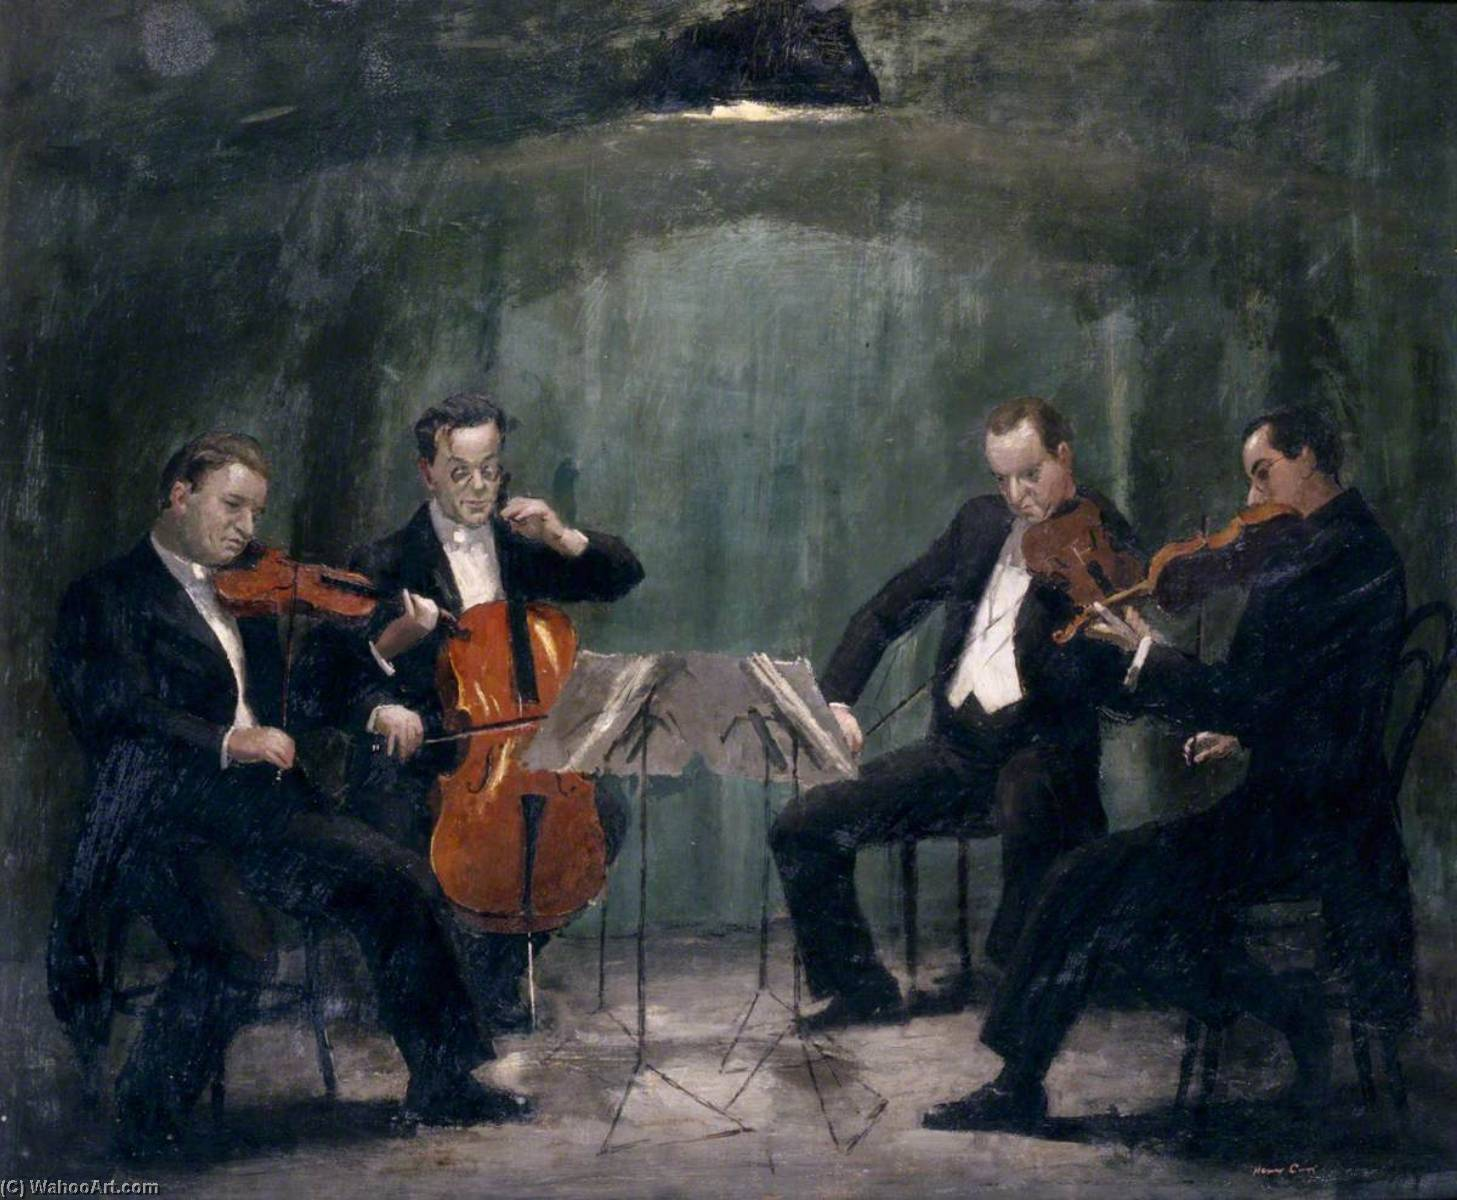 The Griller Quartet Sidney Griller (1911–1993), CBE, FRAM (leader), Colin Hampton (1911–1996), FRAM (cello), Philip Burton (1907–1961), FRAM (viola), and Jack O`Brien (b.1909), FRAM (violin), 1941 by Henry Marvell Carr | Oil Painting | WahooArt.com